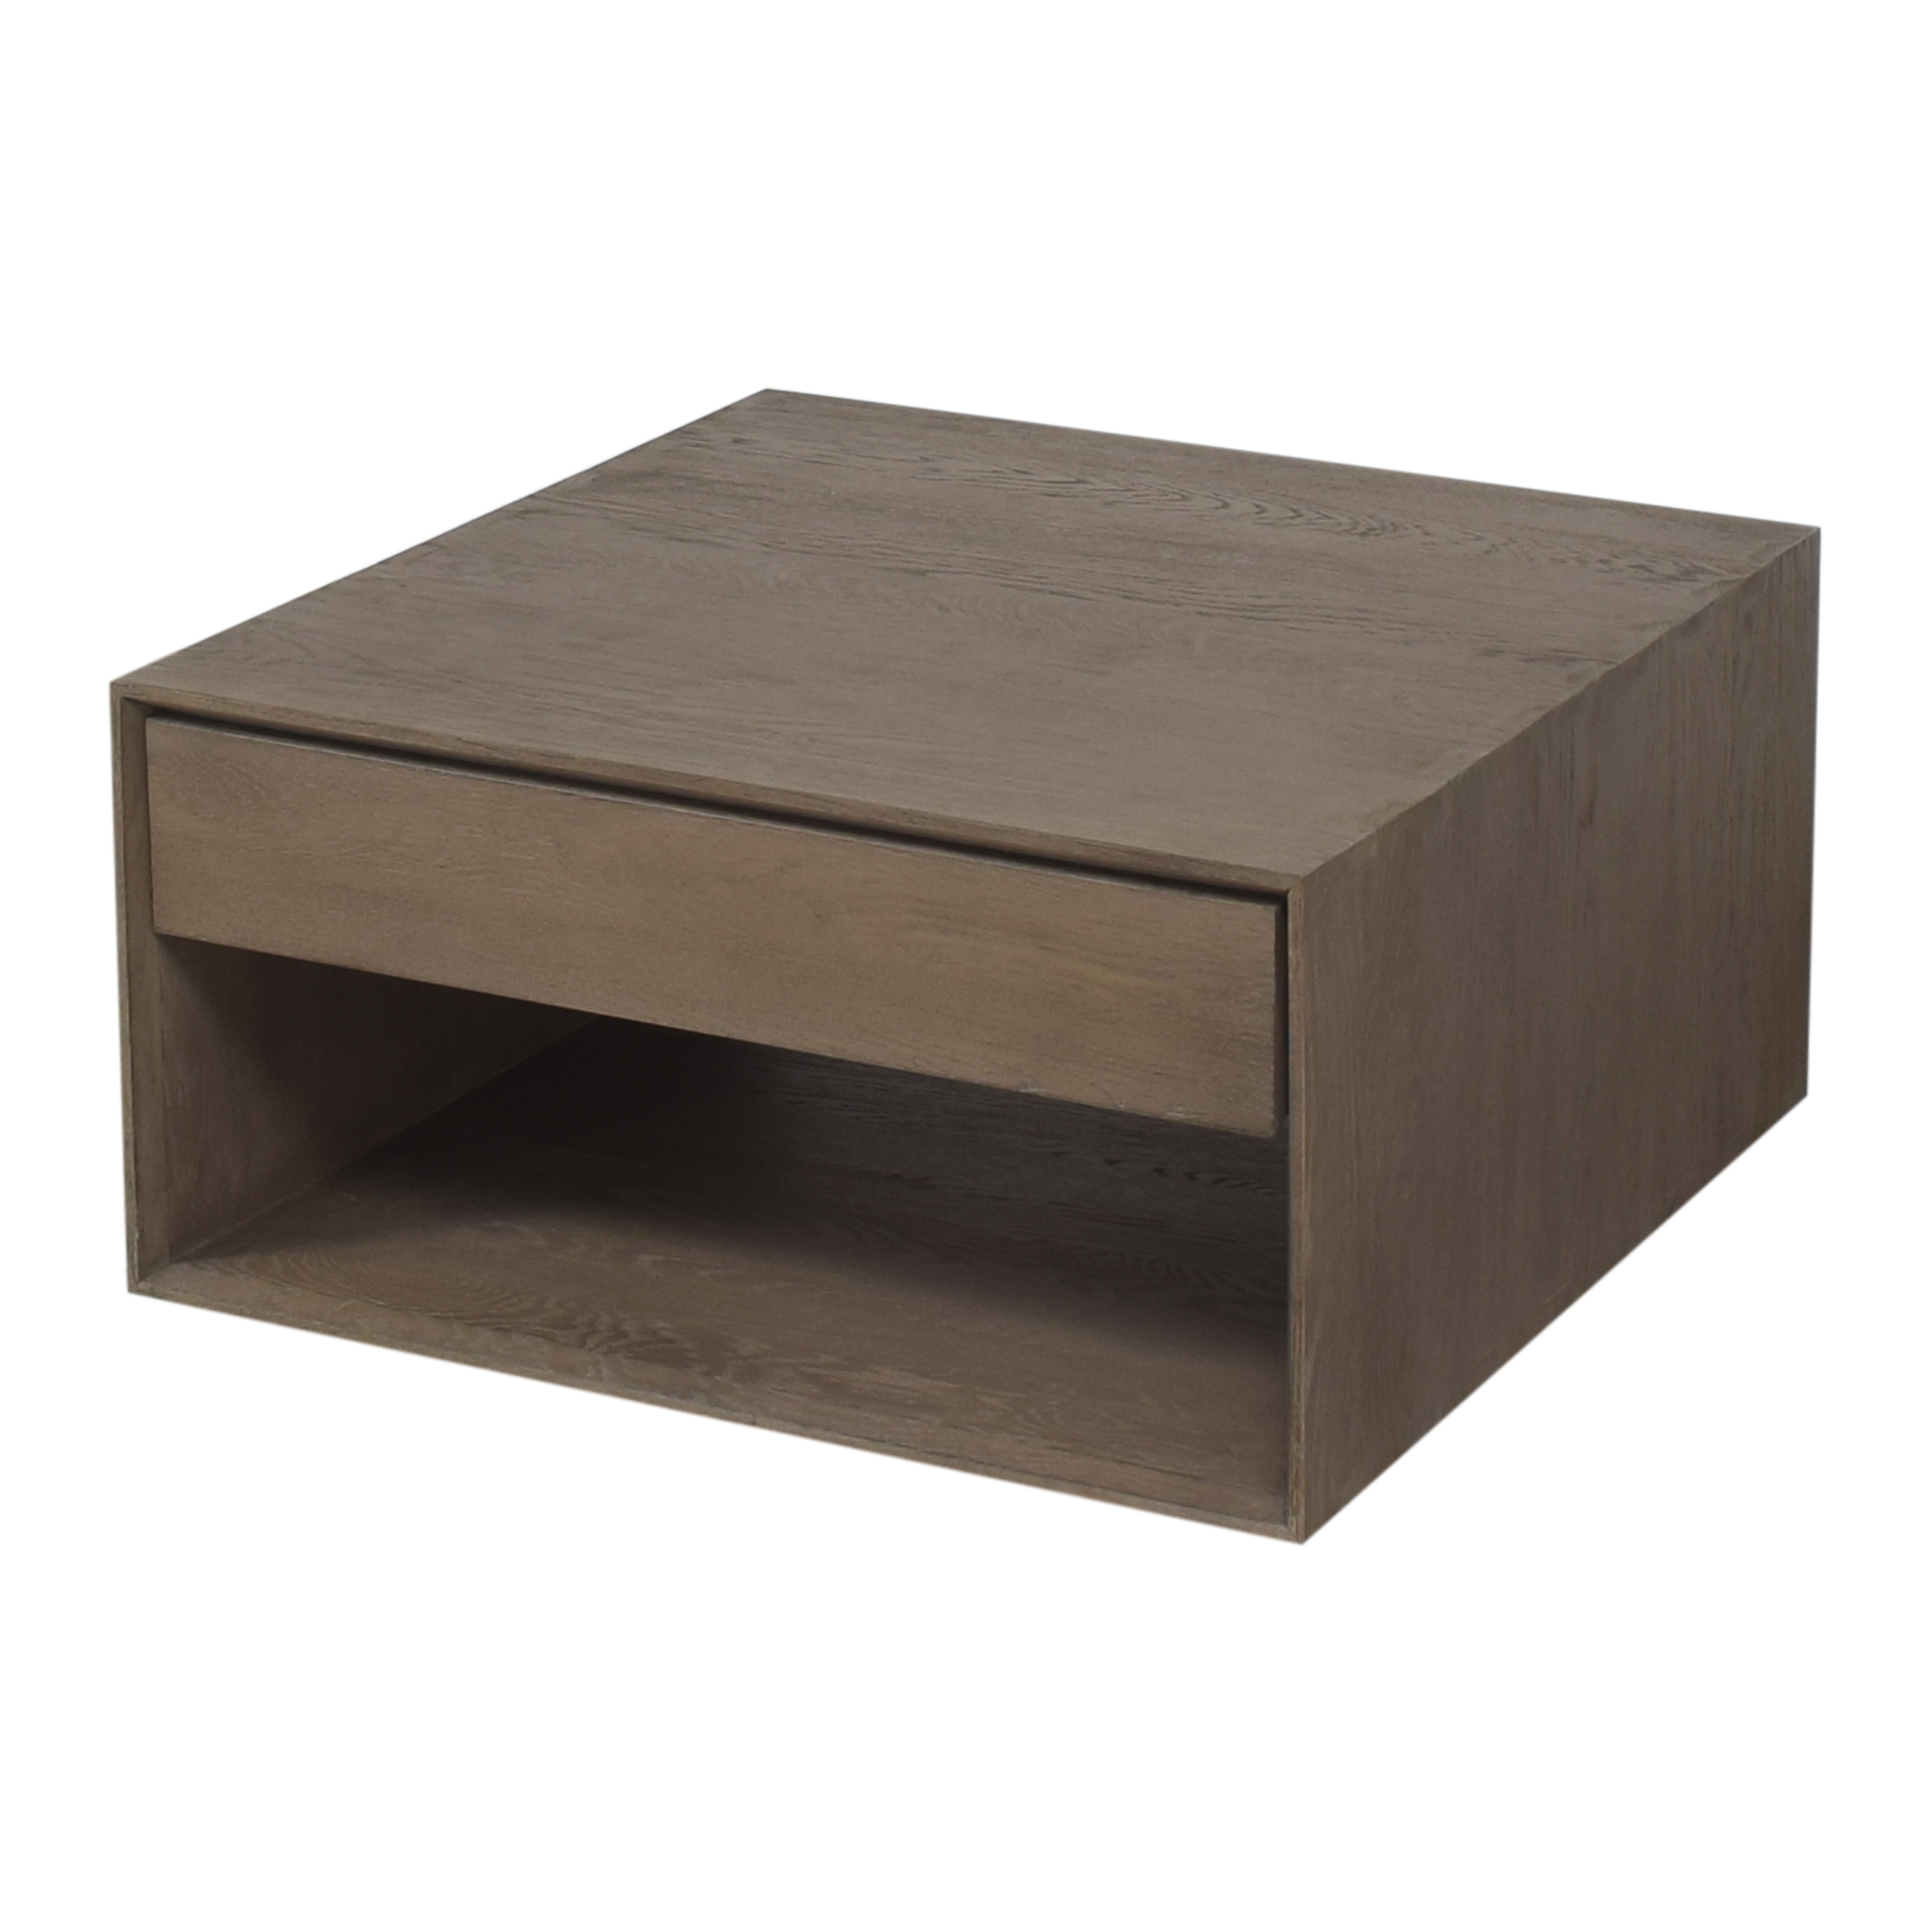 Crate & Barrel Ethan Square Coffee Table sale